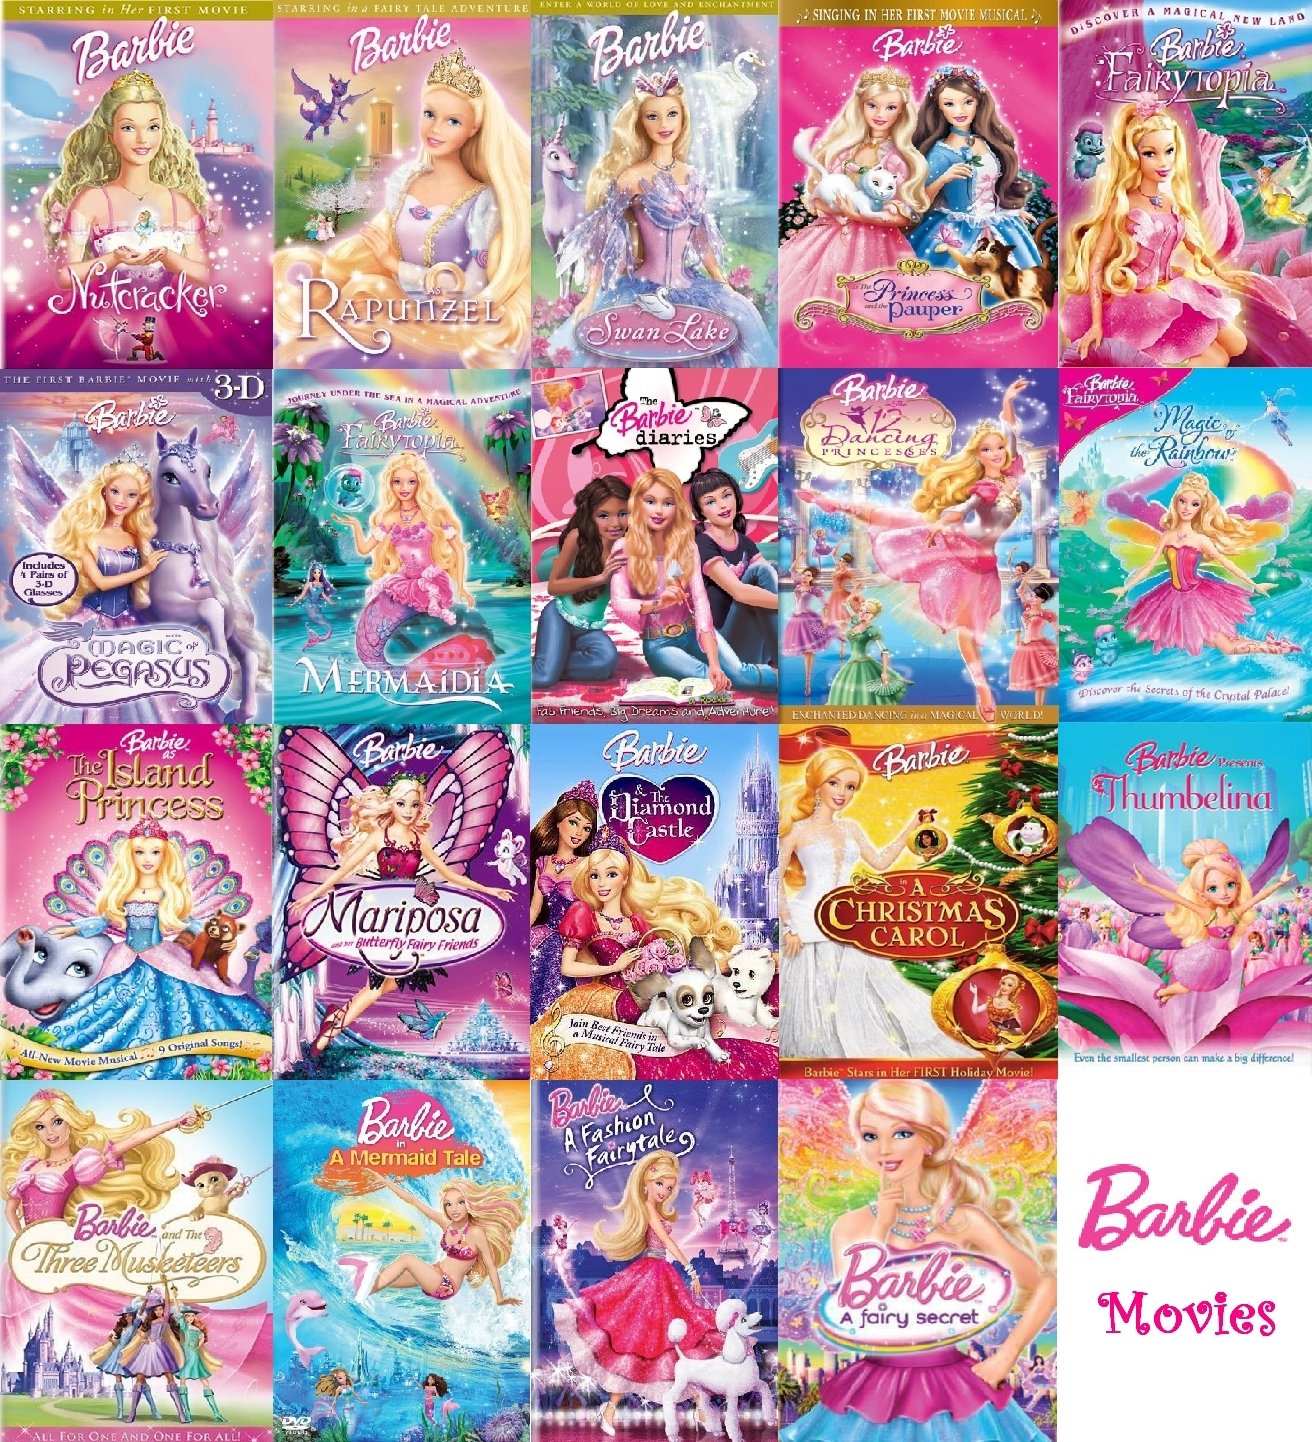 Barbie pelikula Collection (COMPLETE)